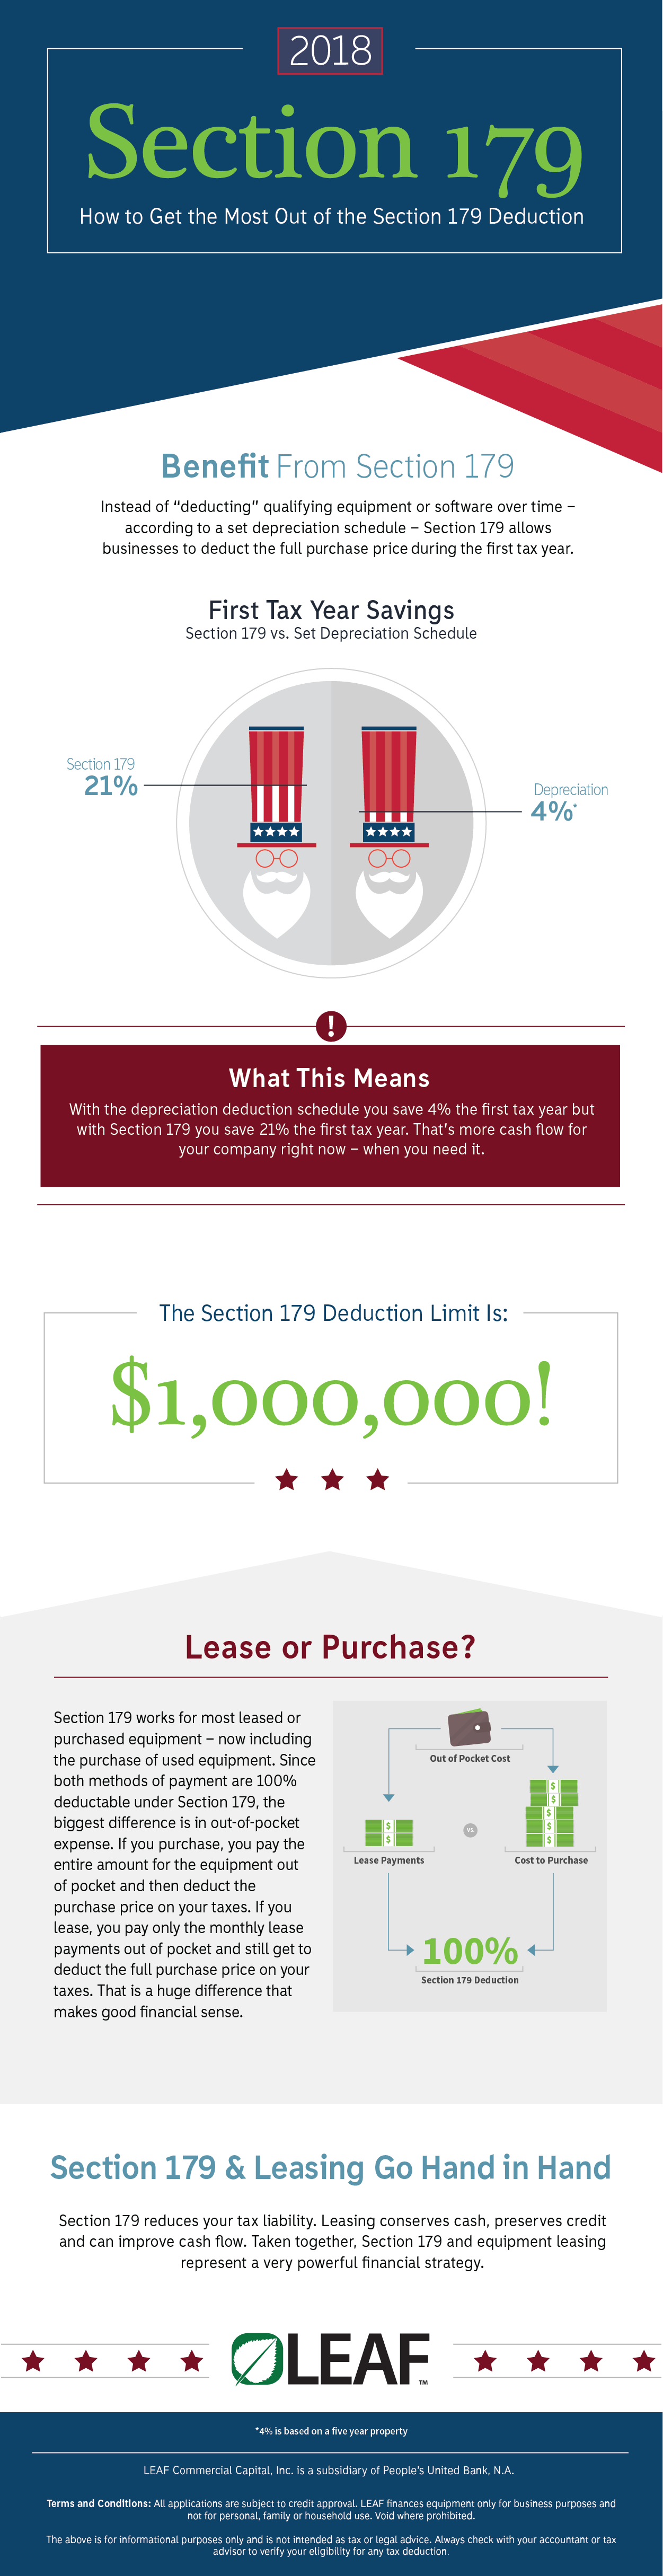 An infographic showing the benefits of Section 179